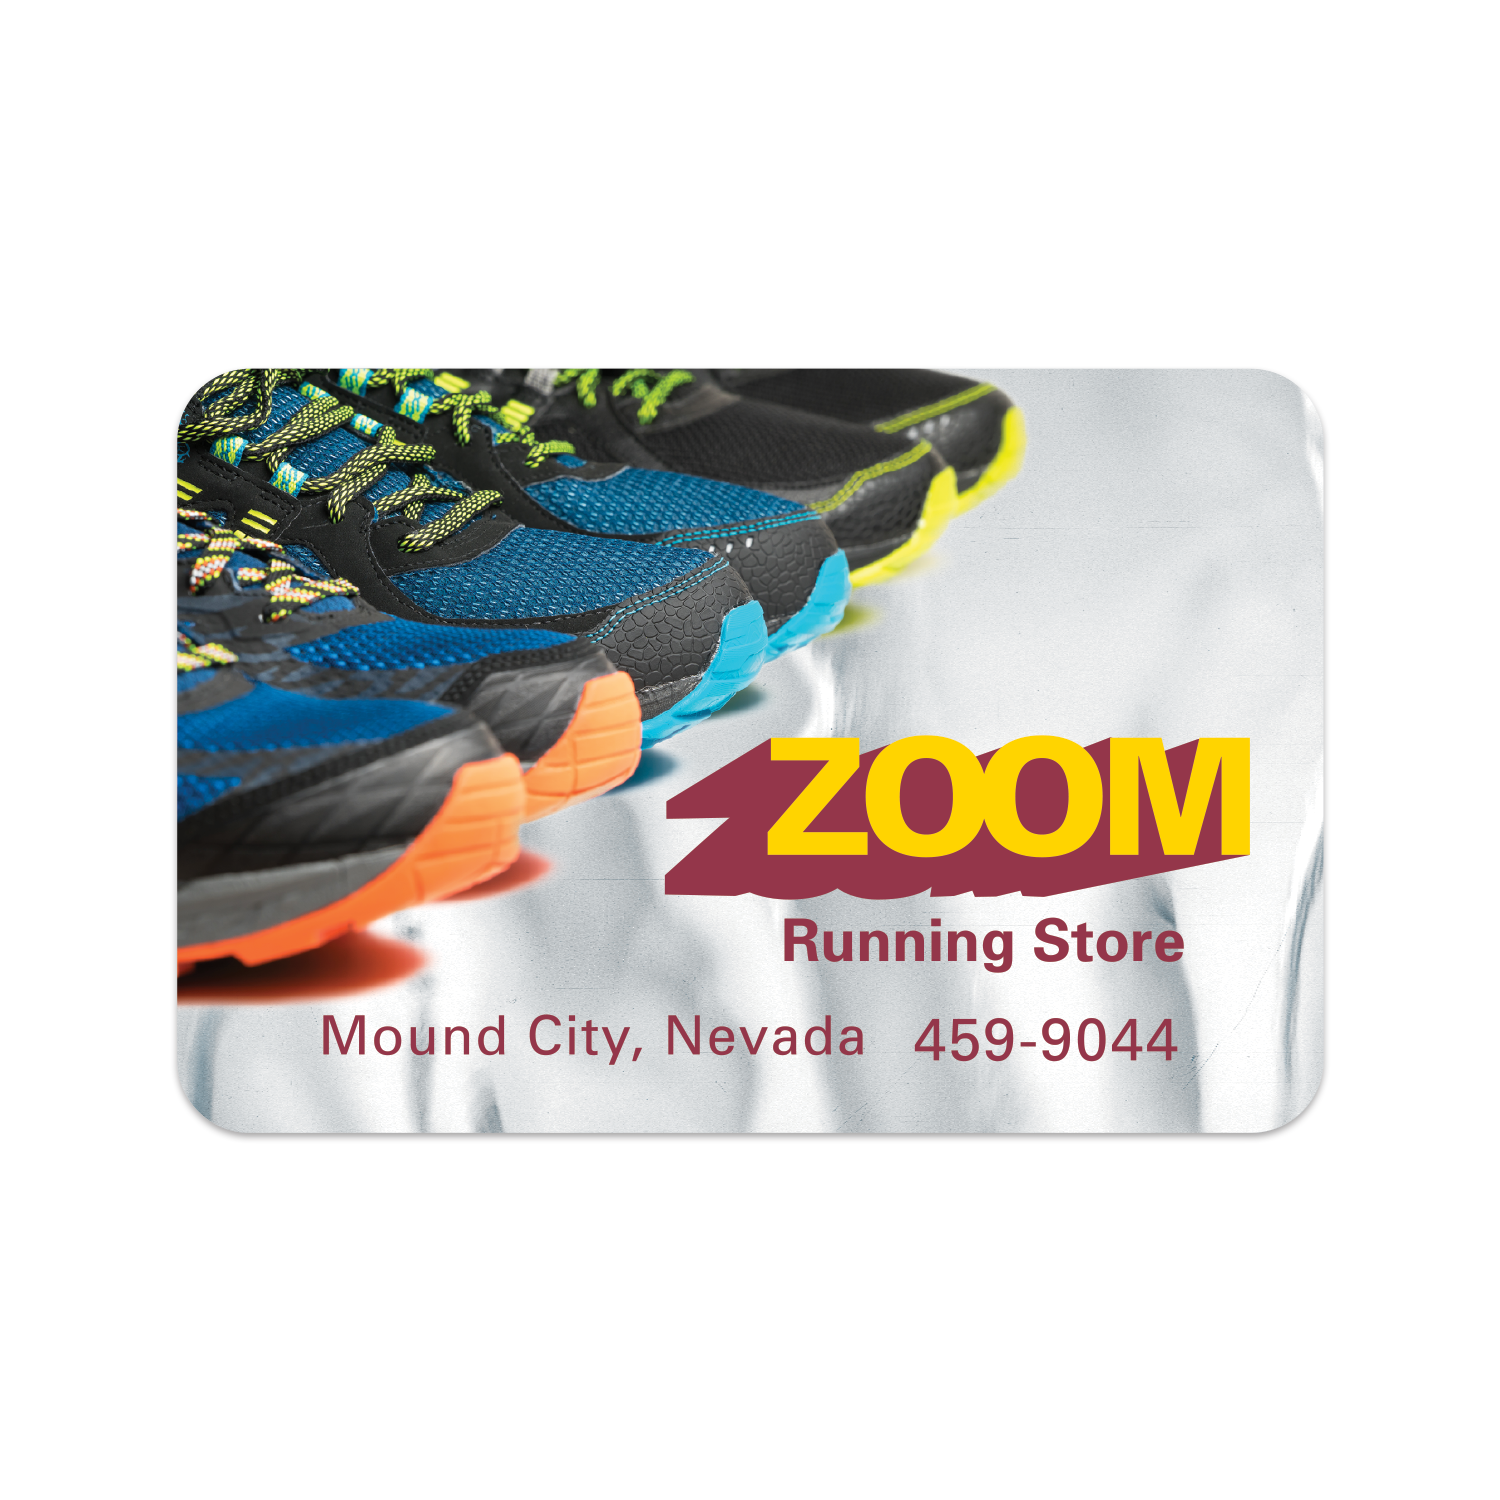 https://www.sswprinting.com/images/products_gallery_images/181222_ZOOM-Running-Store_hi-res.png